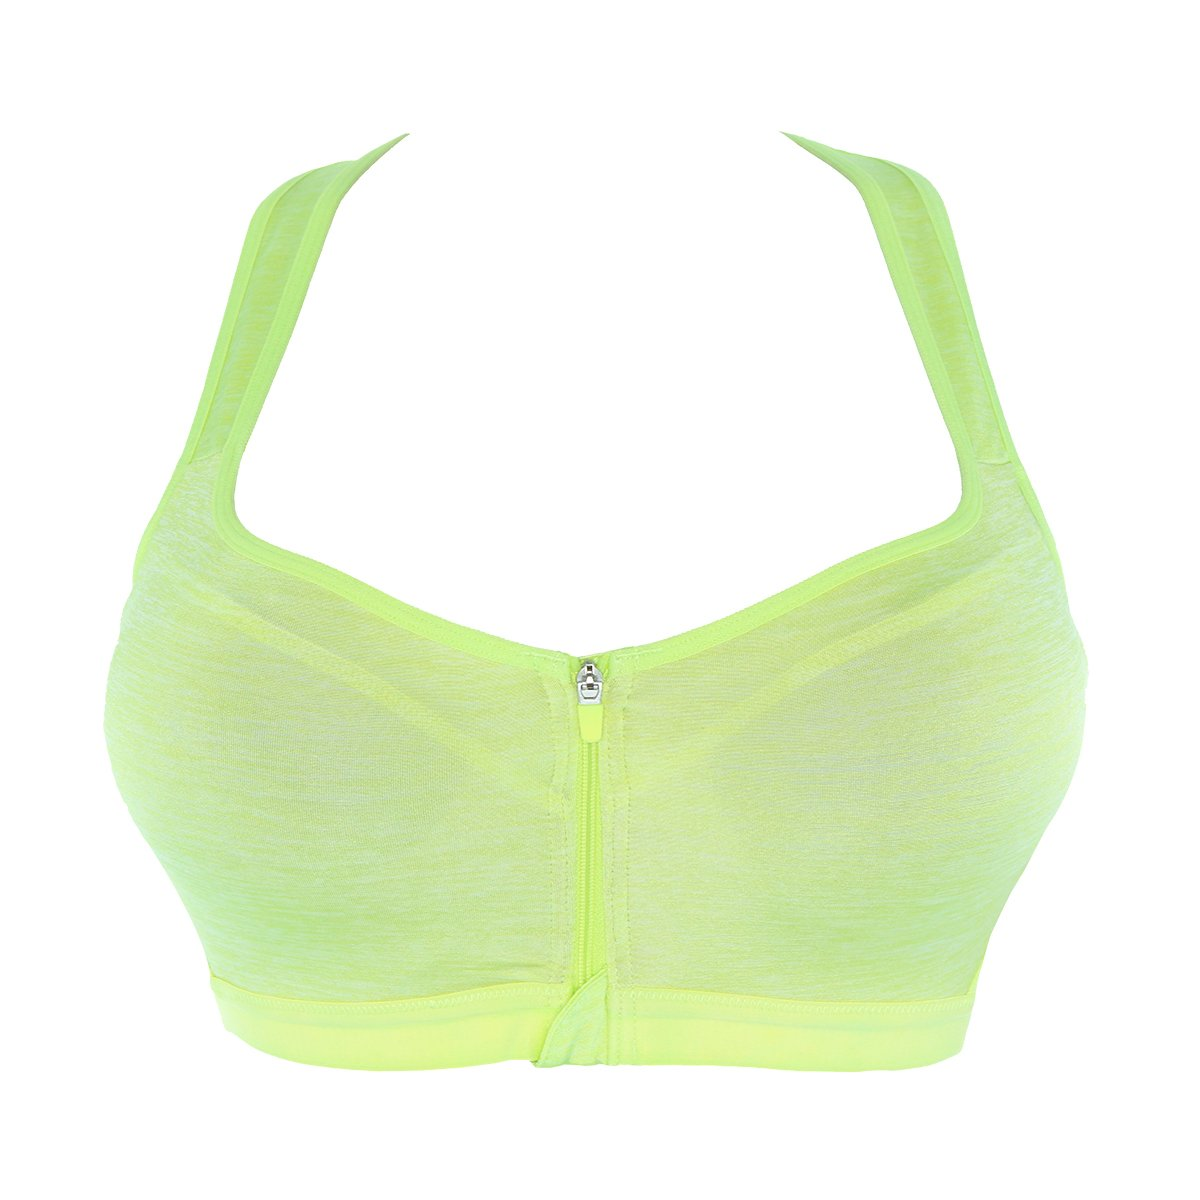 Sans Complexe 56H9803 Women's Sport Tonic Lime Green Solid Colour Non-Wired Support Sports Bra